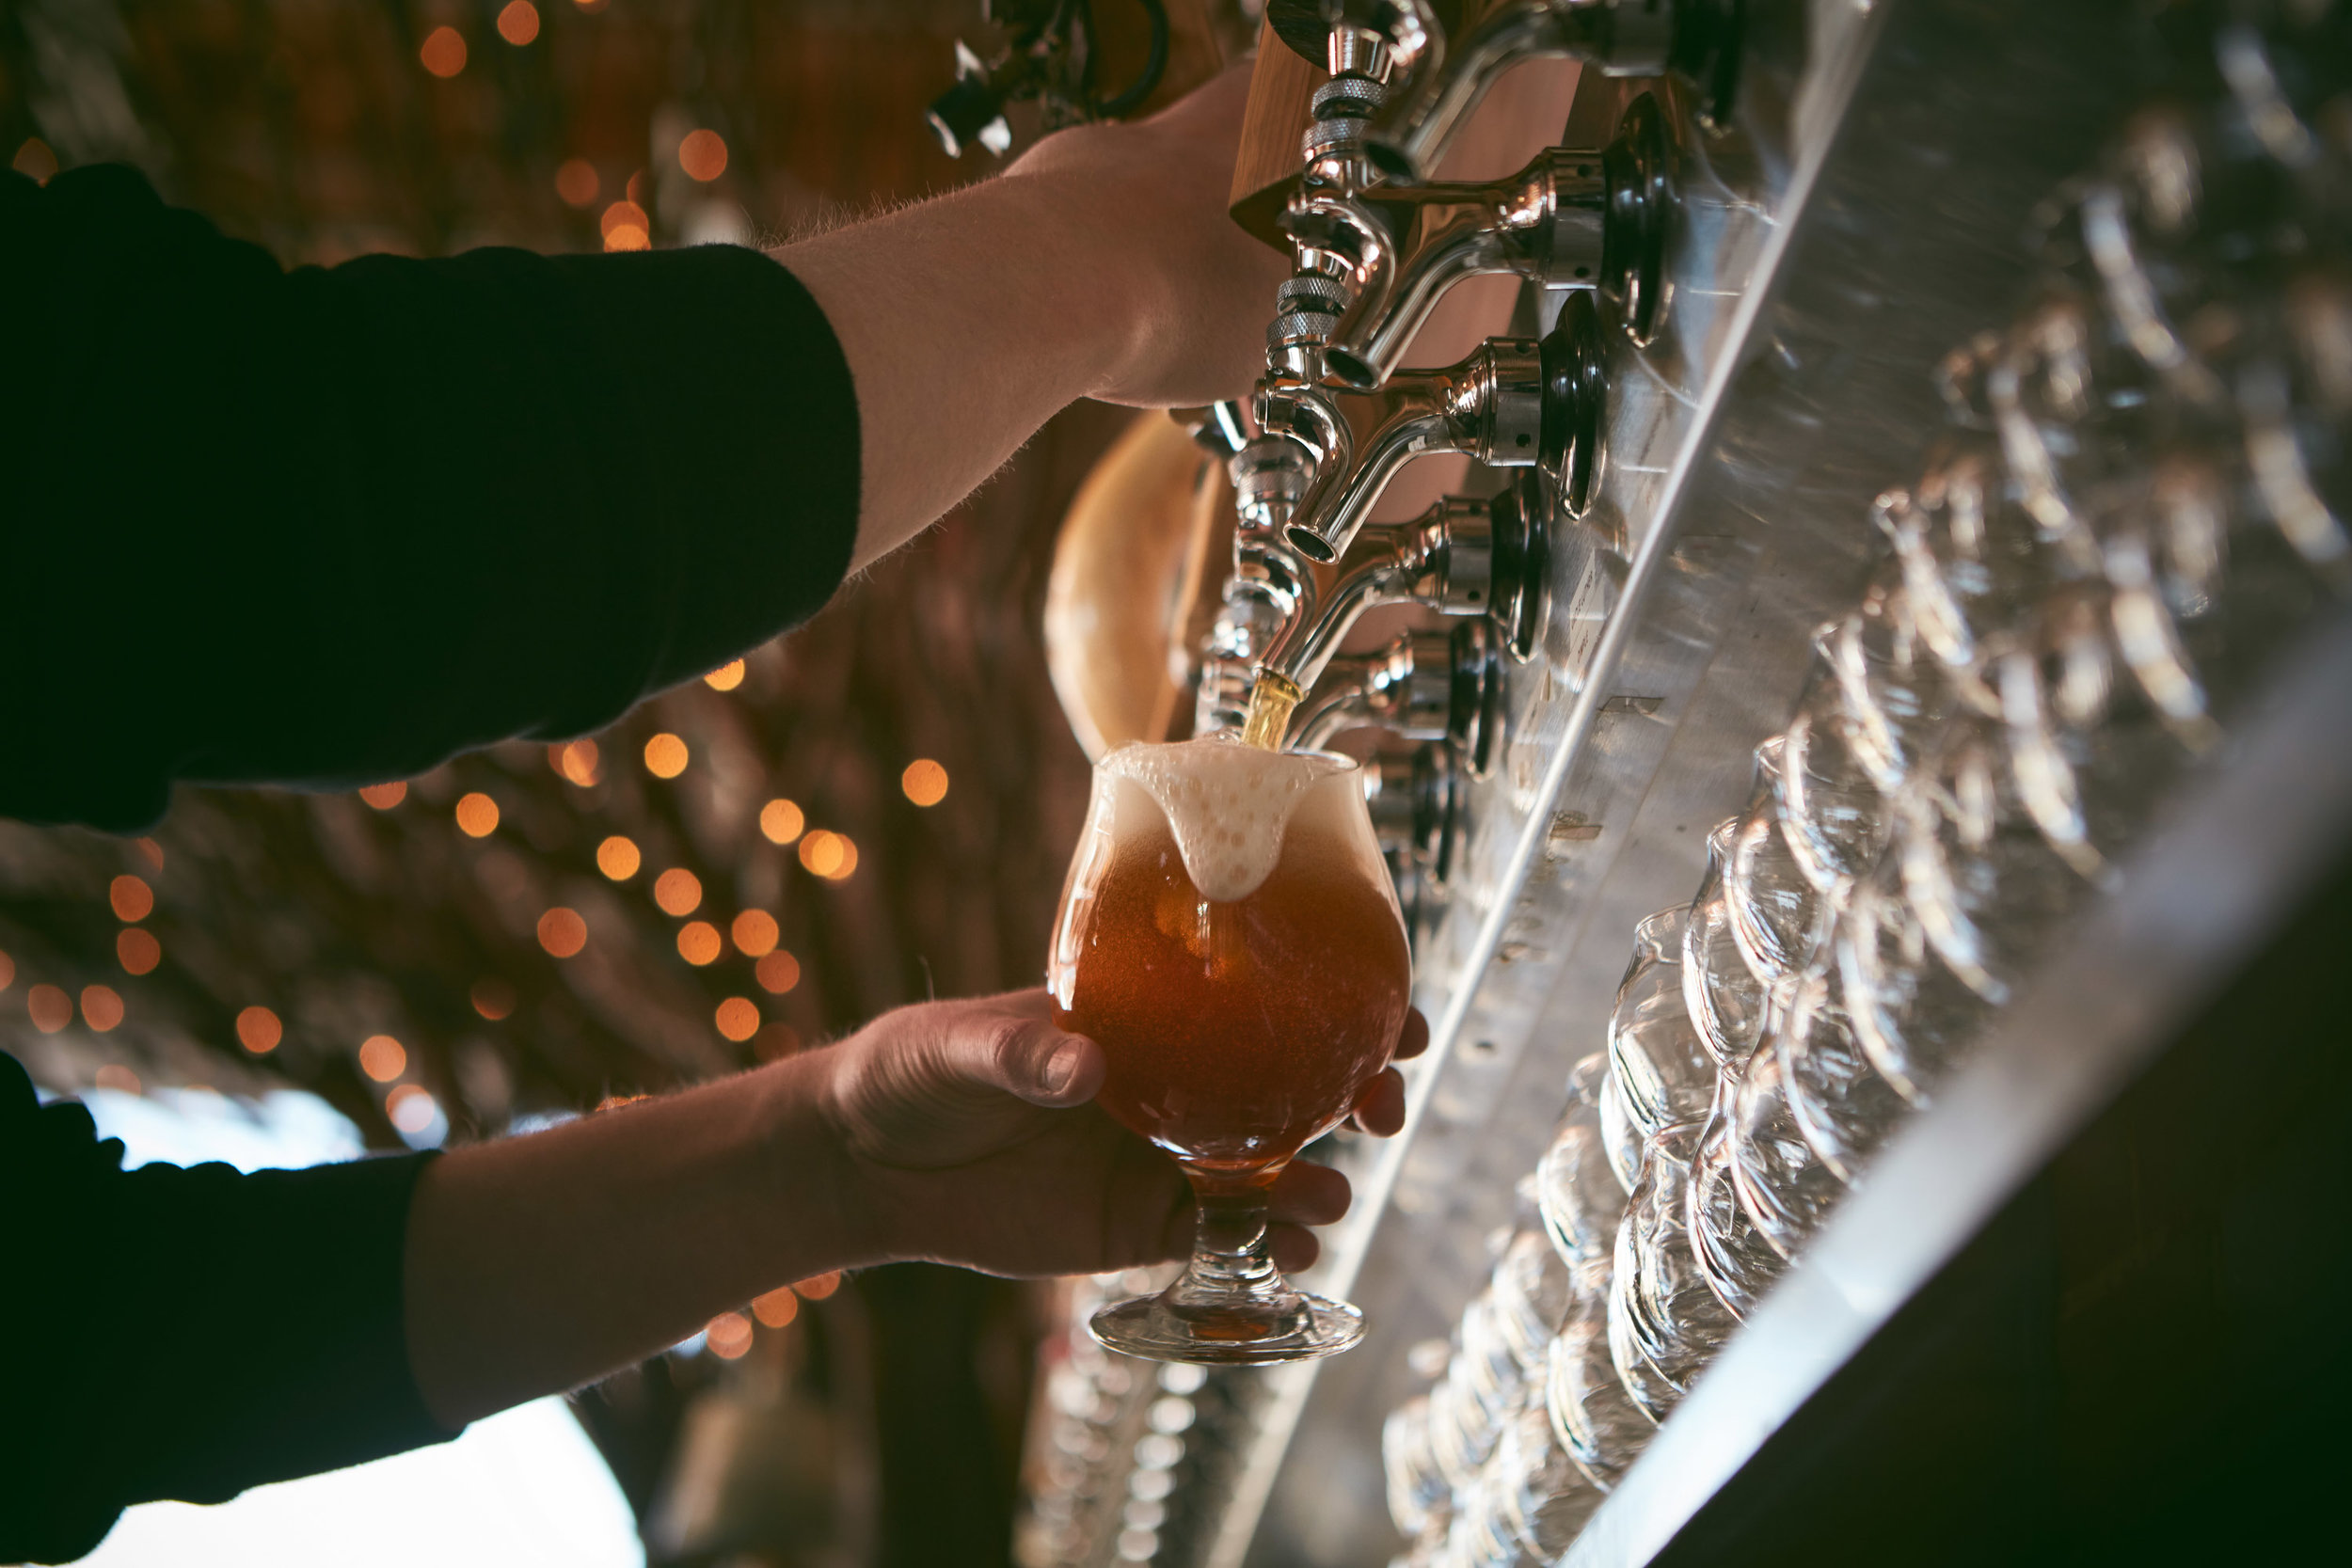 Photo 2: Photograph of beer being poured at Dry Ground Brewery in Paducah, Ky.